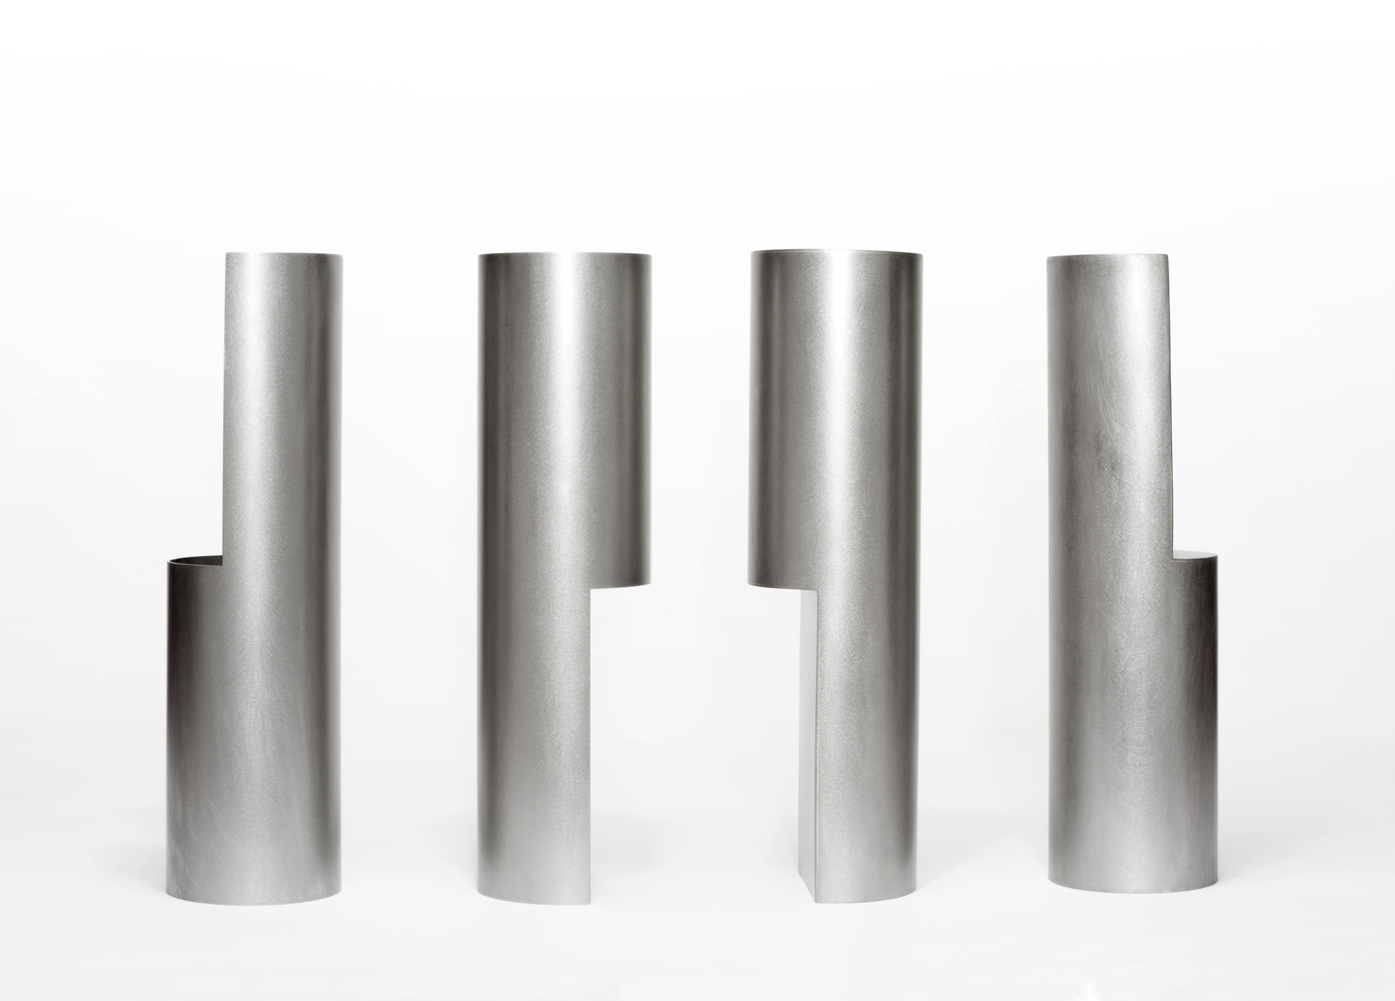 Group of Four, 2018, Steel, 320 x 88 each, $3,100